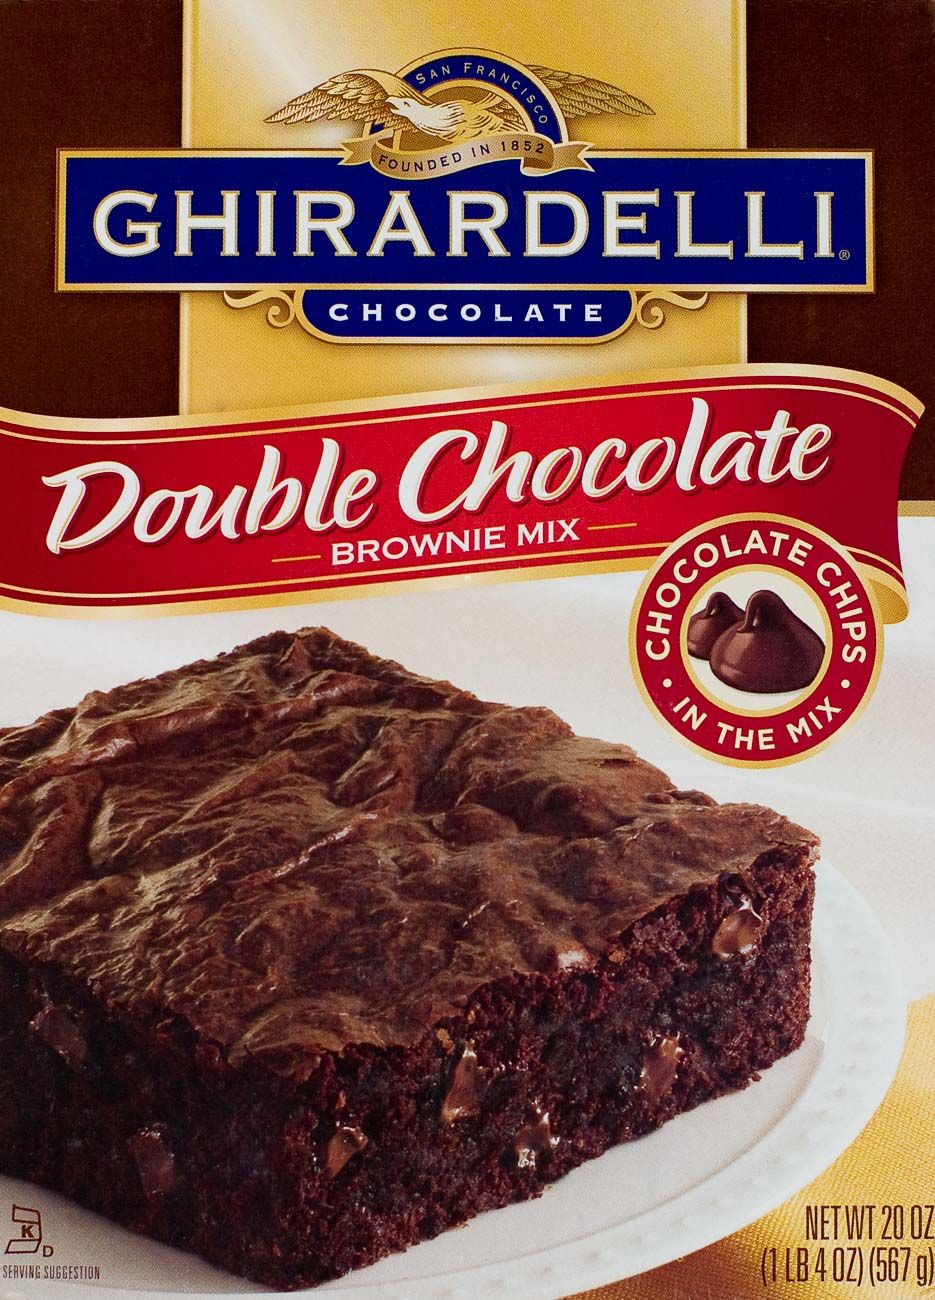 Ghirardelli double chocolate brownie packaging